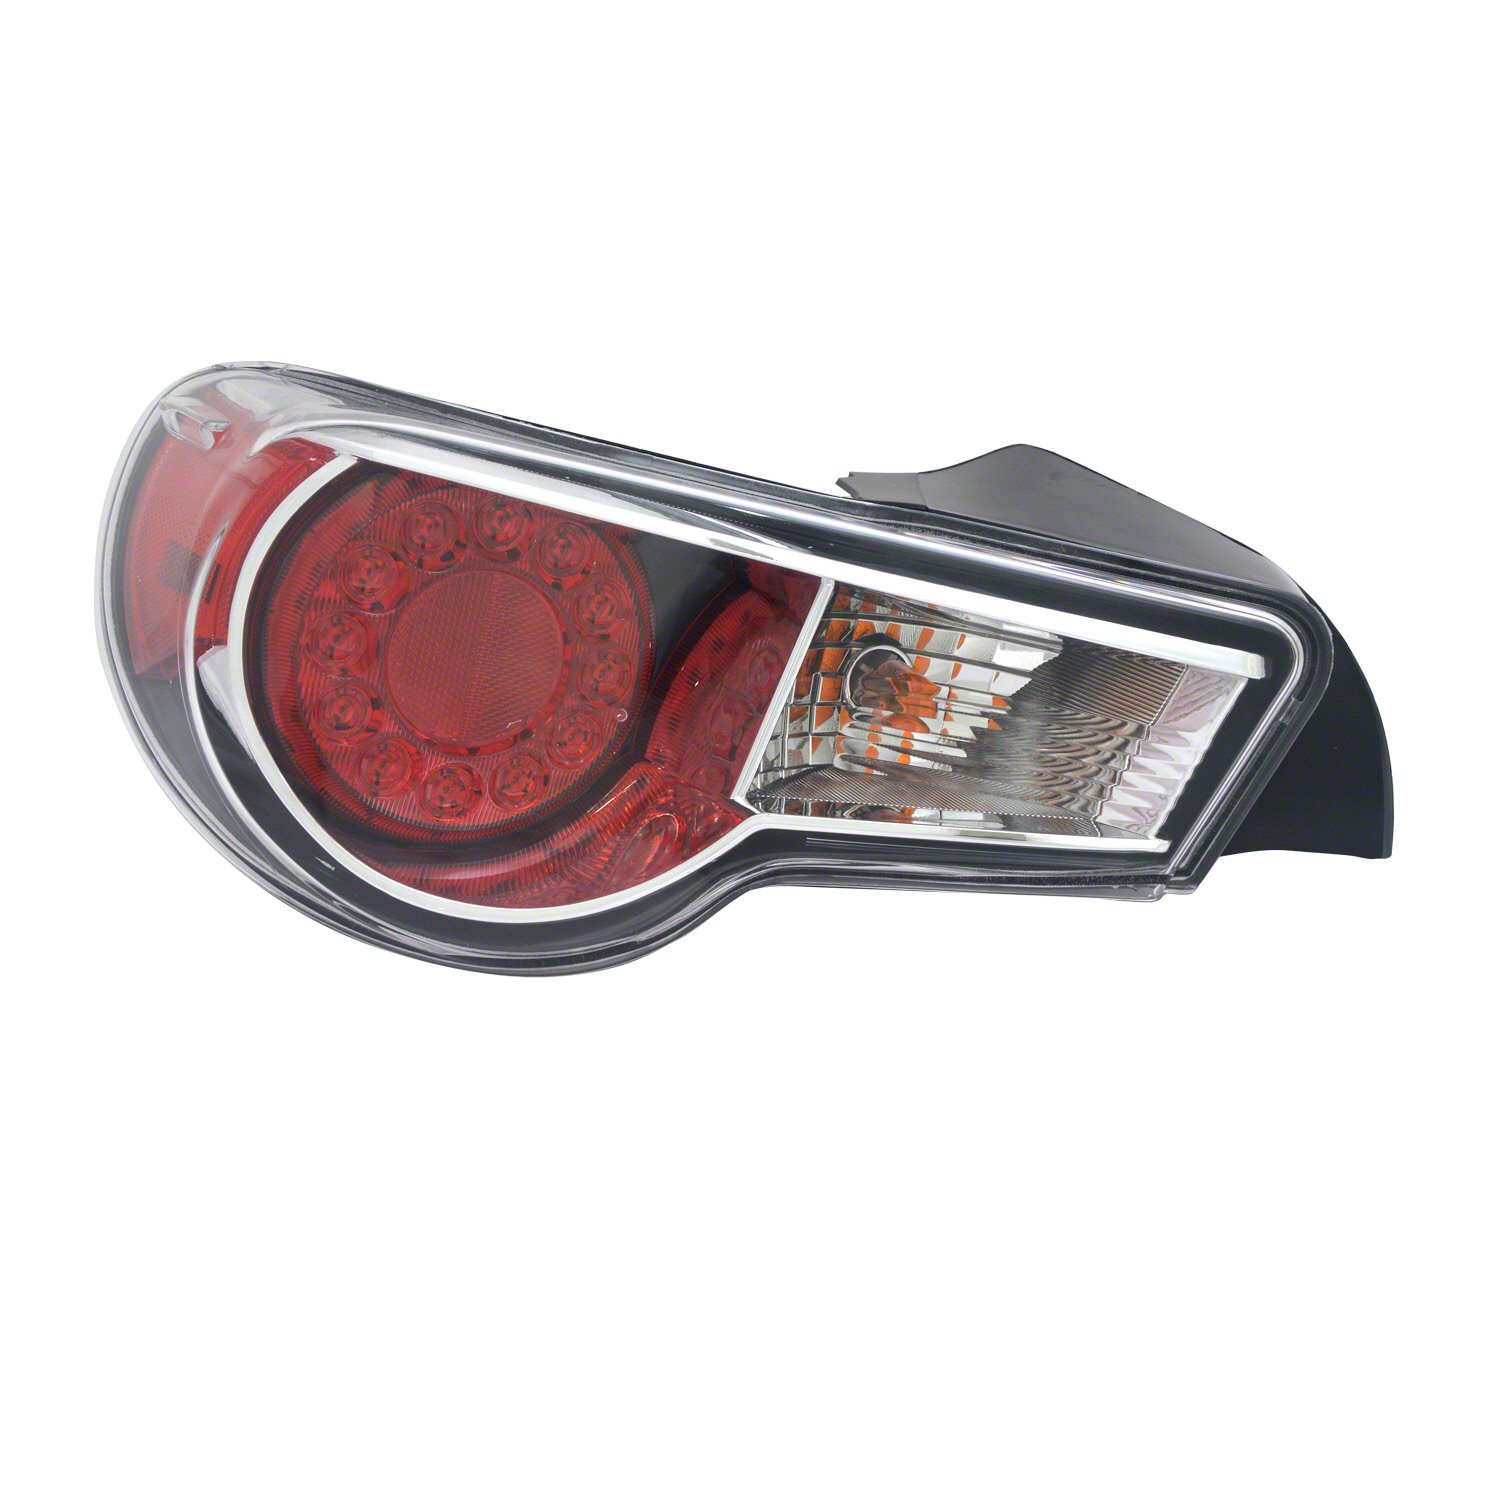 Partslink SC2818109 OE Replacement Tail Light SCION FR-S 2013-2016 Multiple Manufacturers SC2818109C